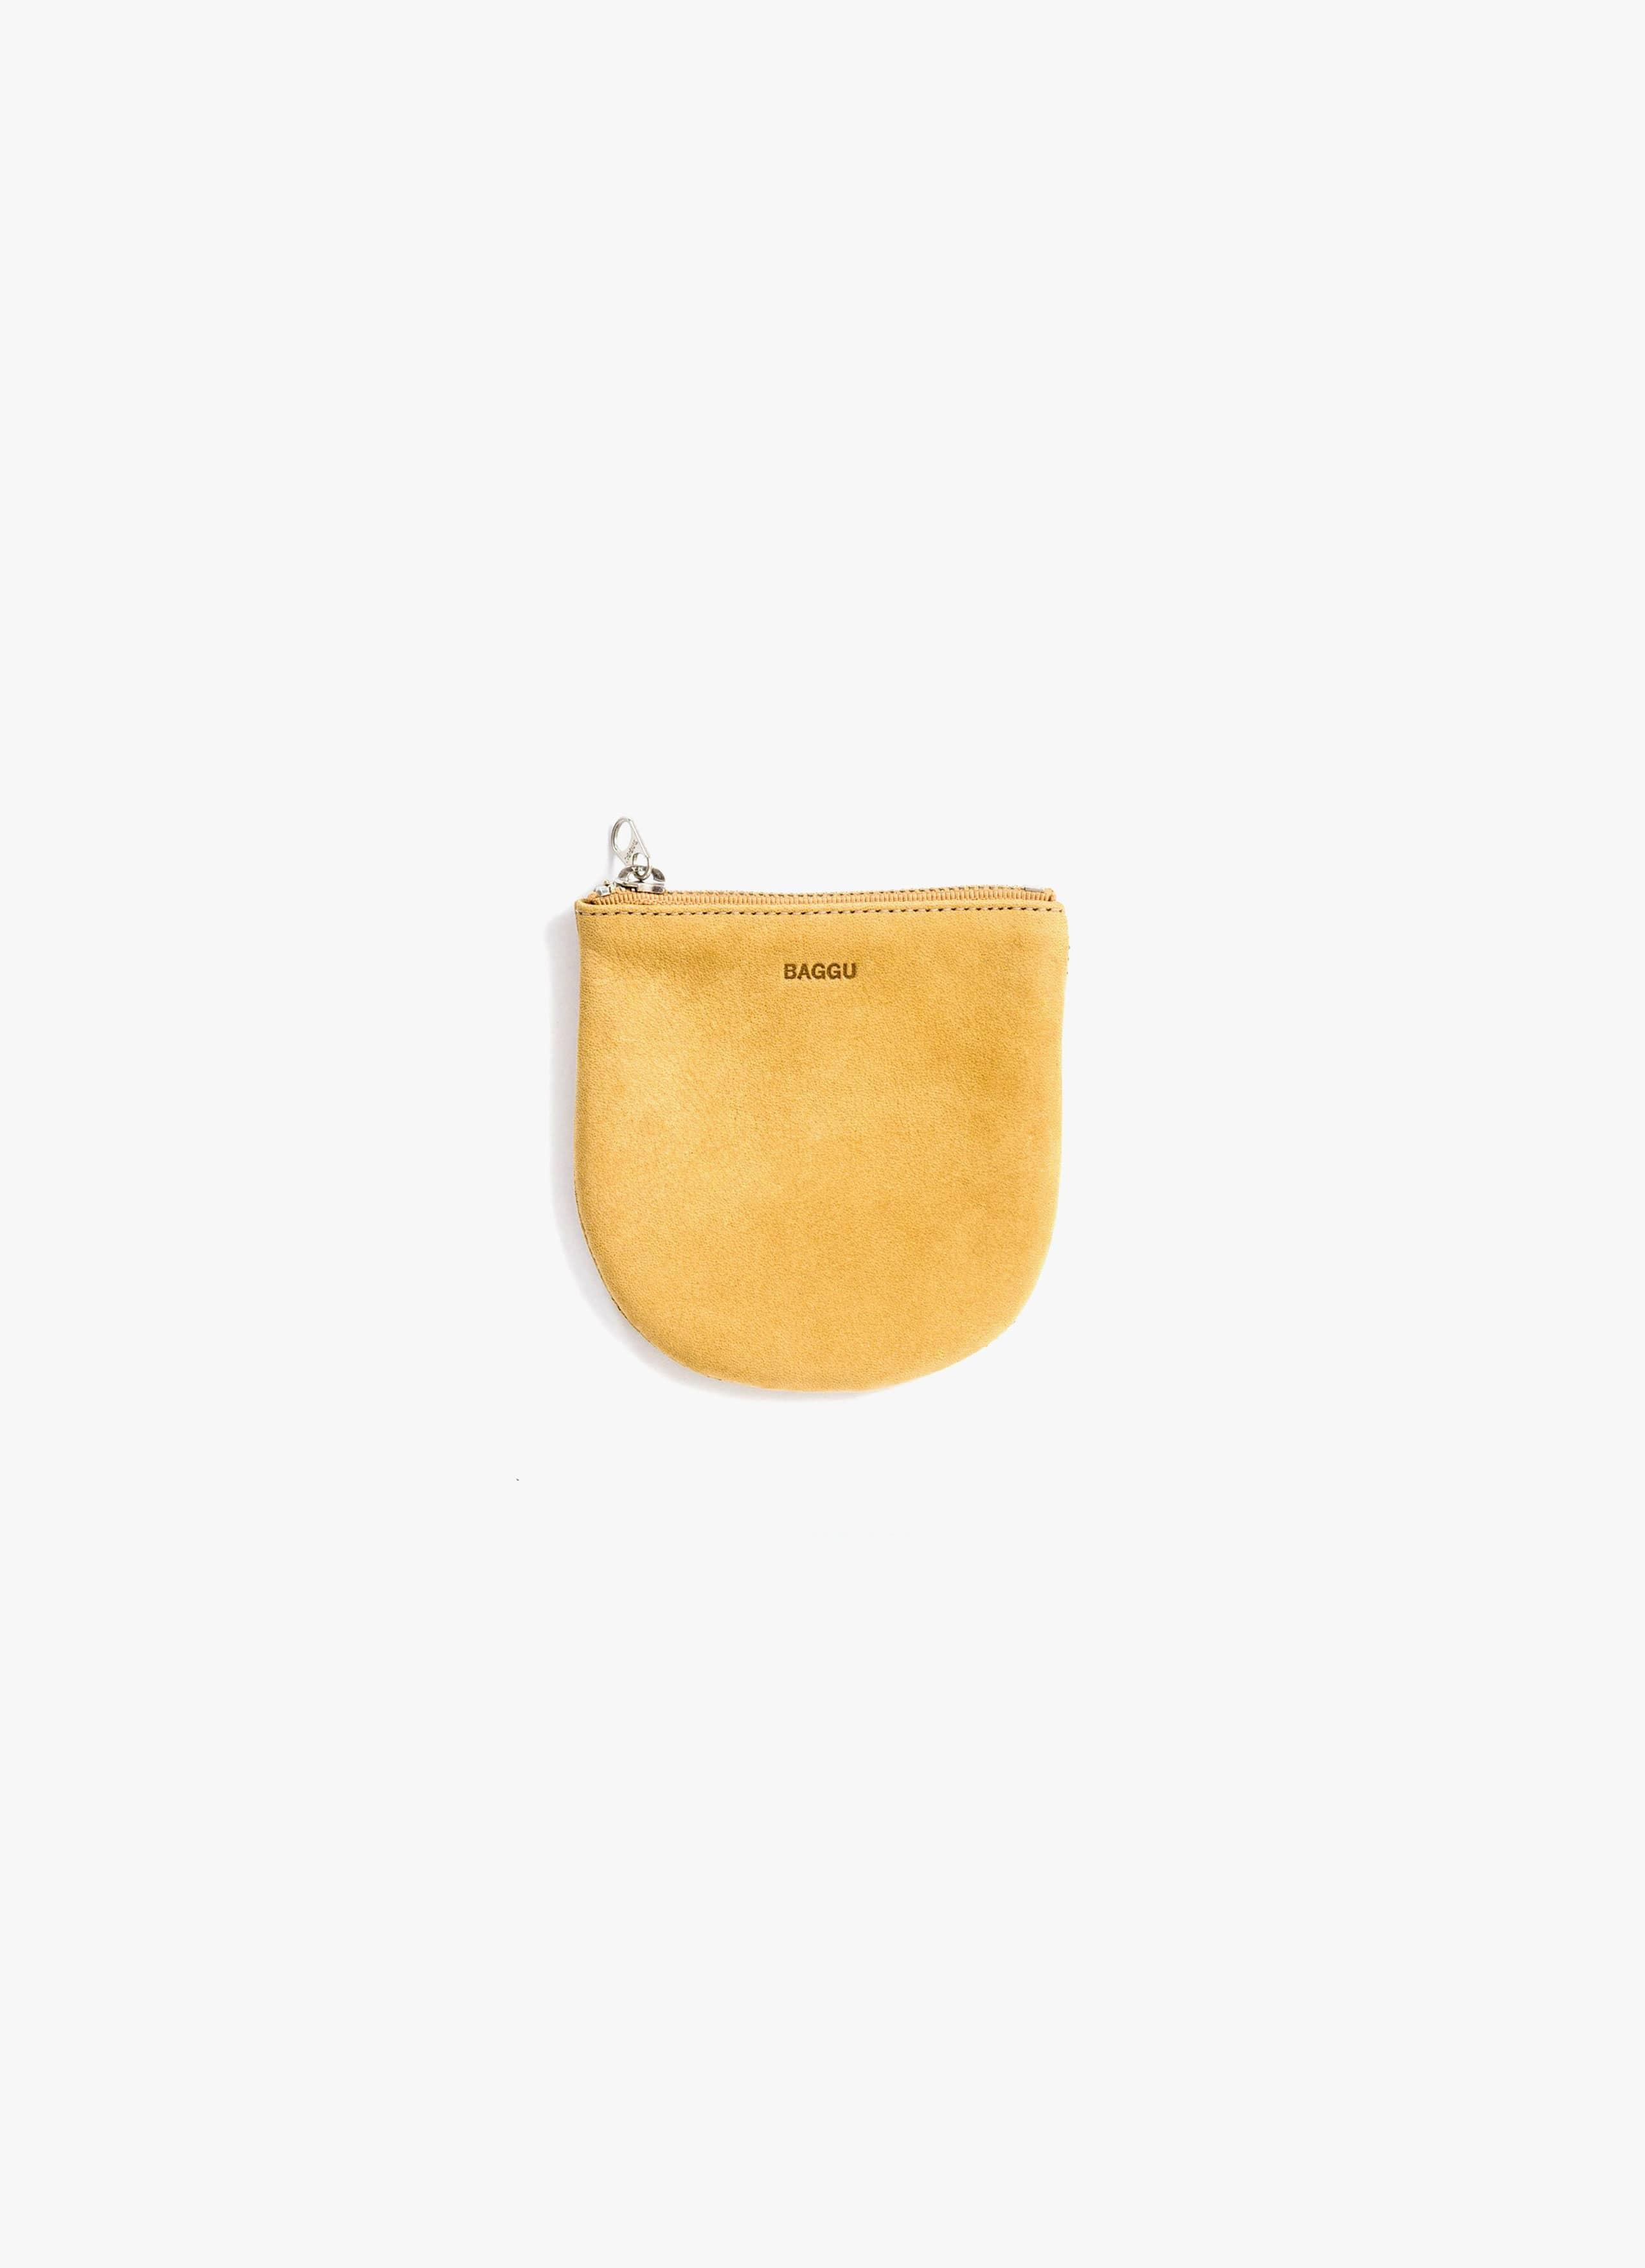 Baggu - Small U Pouch - Honey - Nubuck Leather